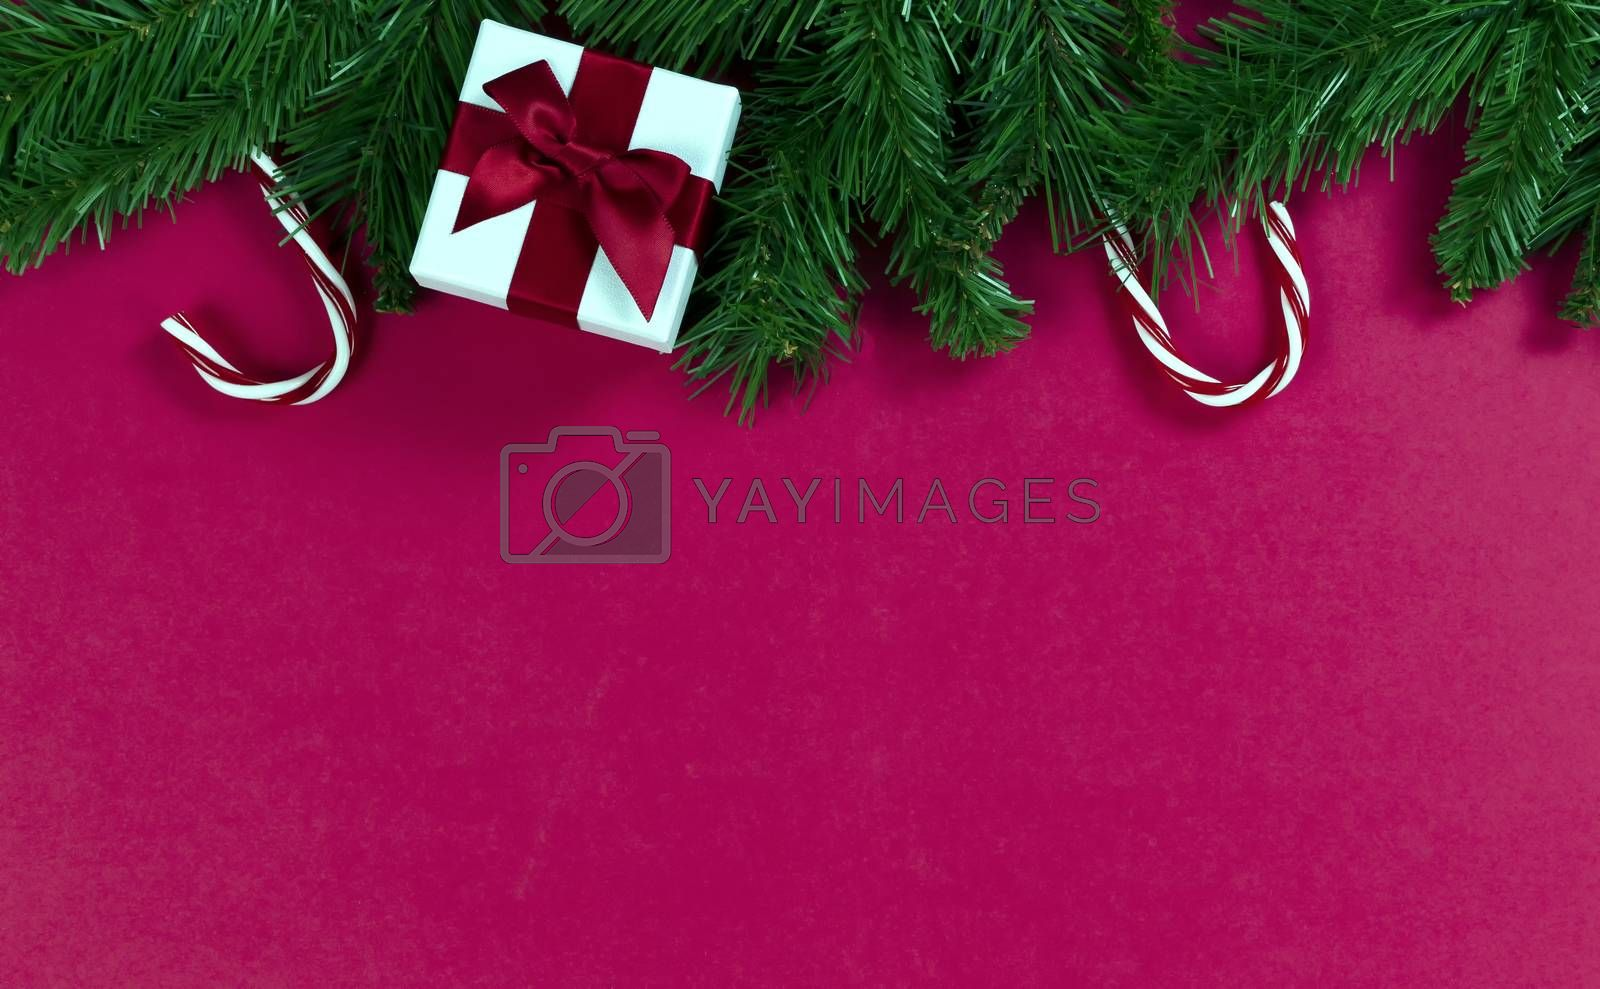 Merry Christmas and happy New Year on a red background with evergreen branches plus candy canes and gift box